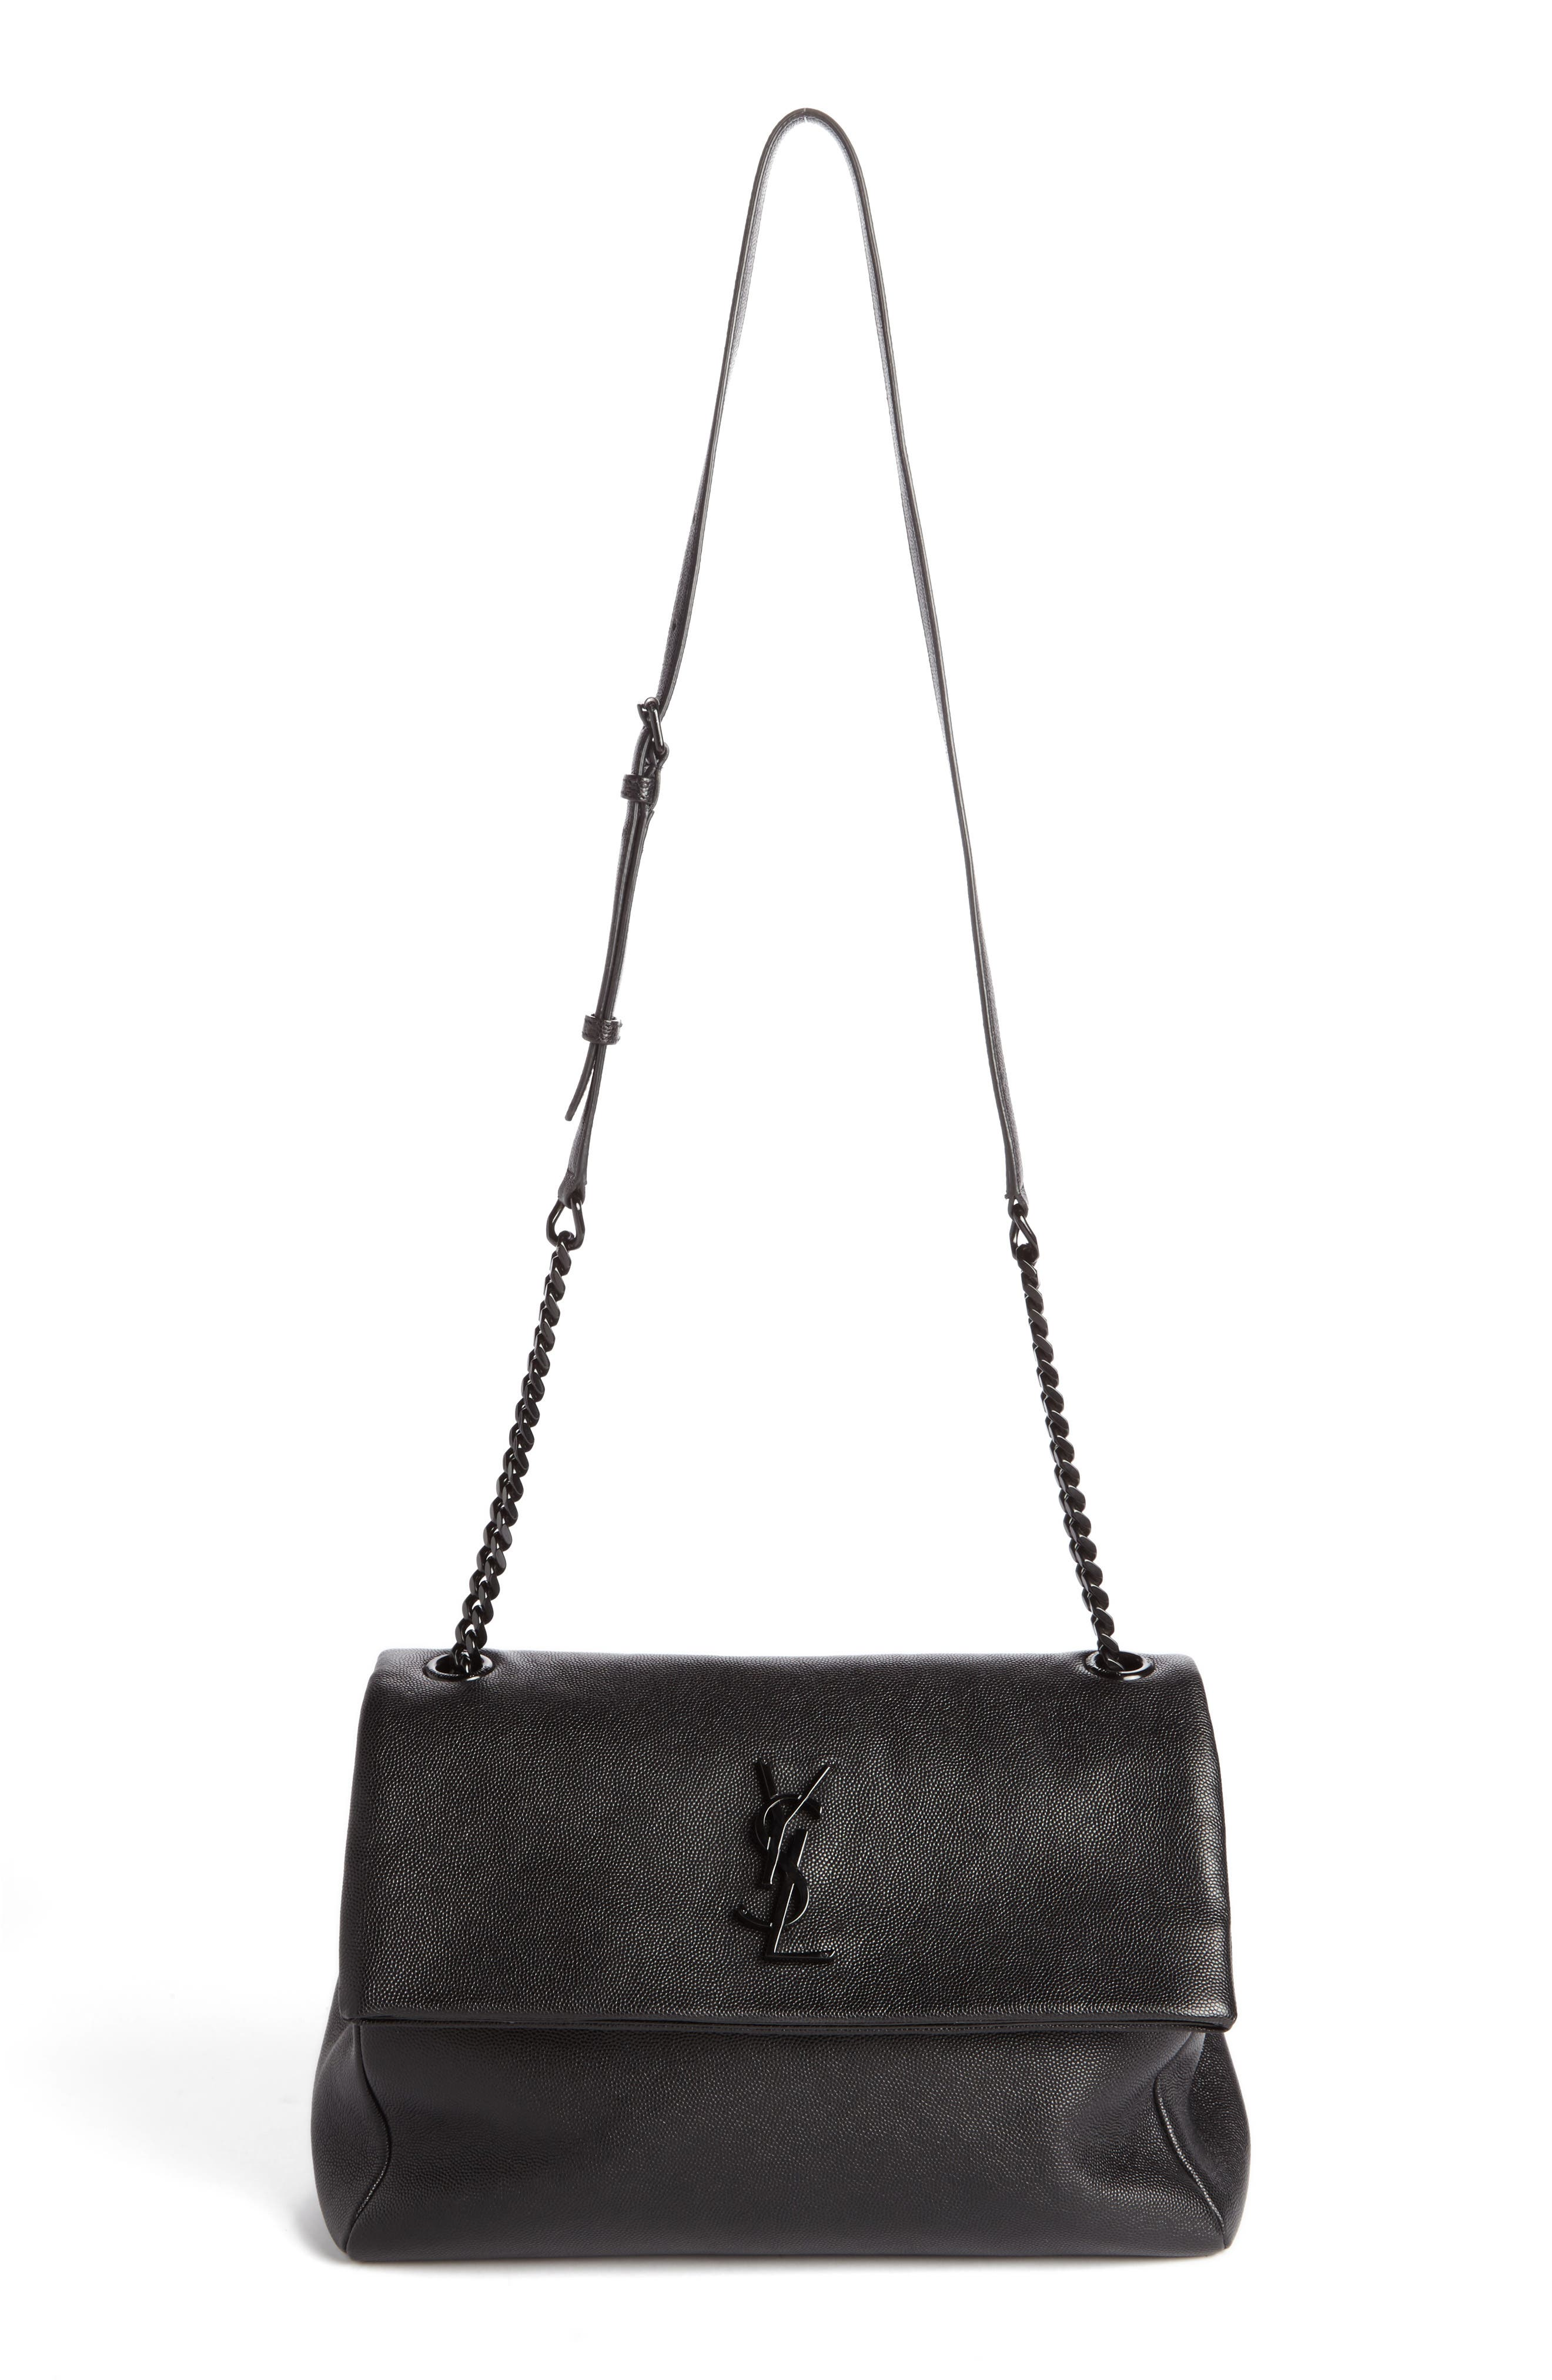 SAINT LAURENT Medium West Hollywood Leather Shoulder Bag